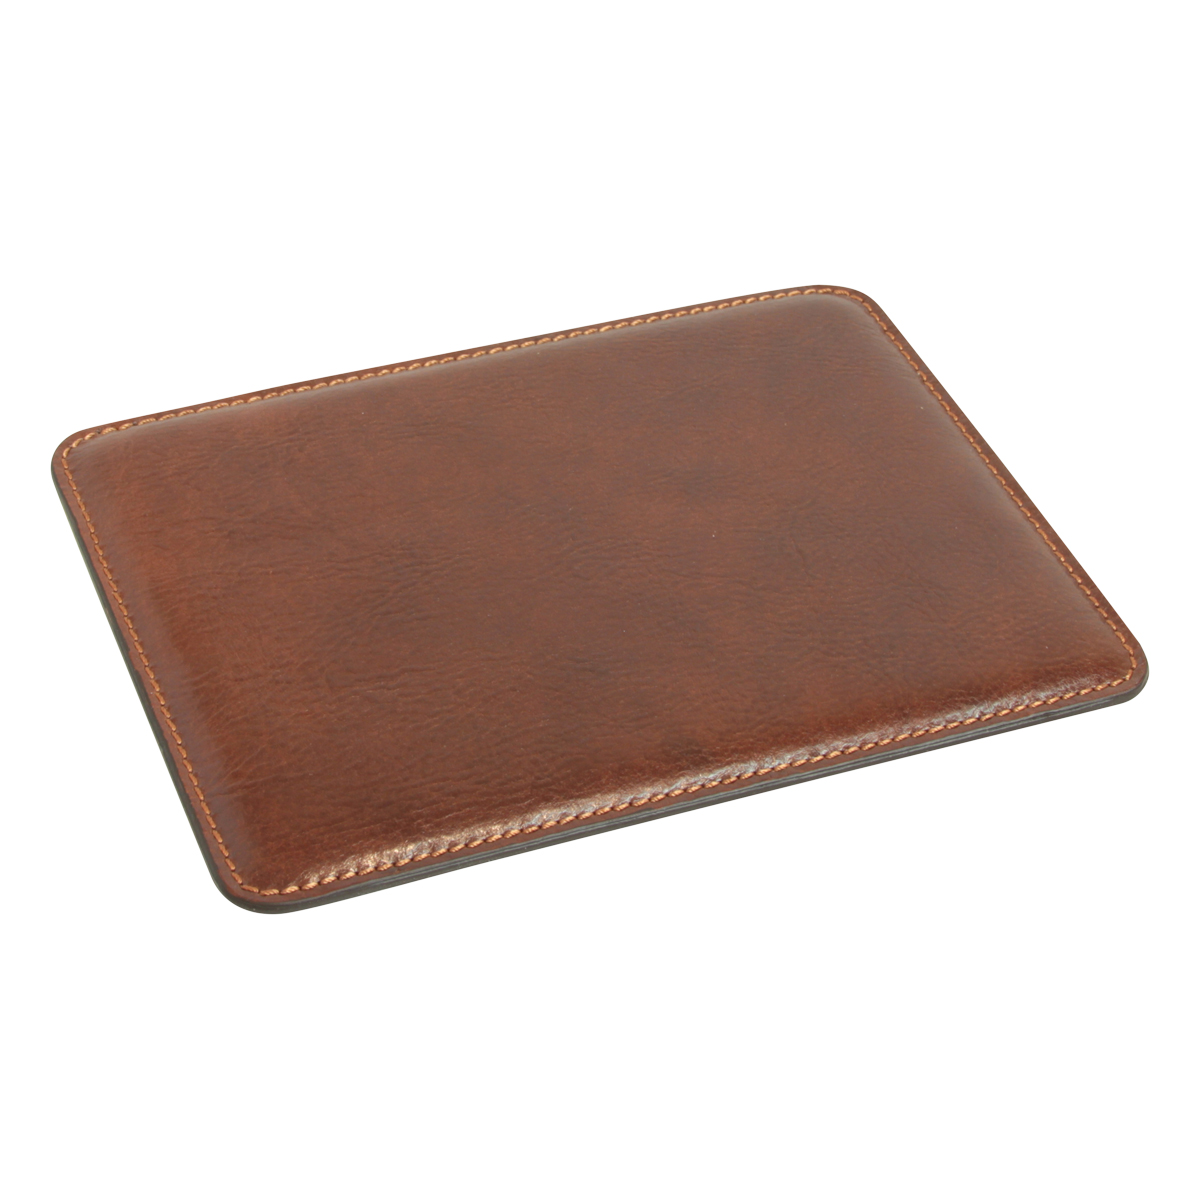 Leather Mouse pad - Brown | 752005MA E | Old Angler Firenze